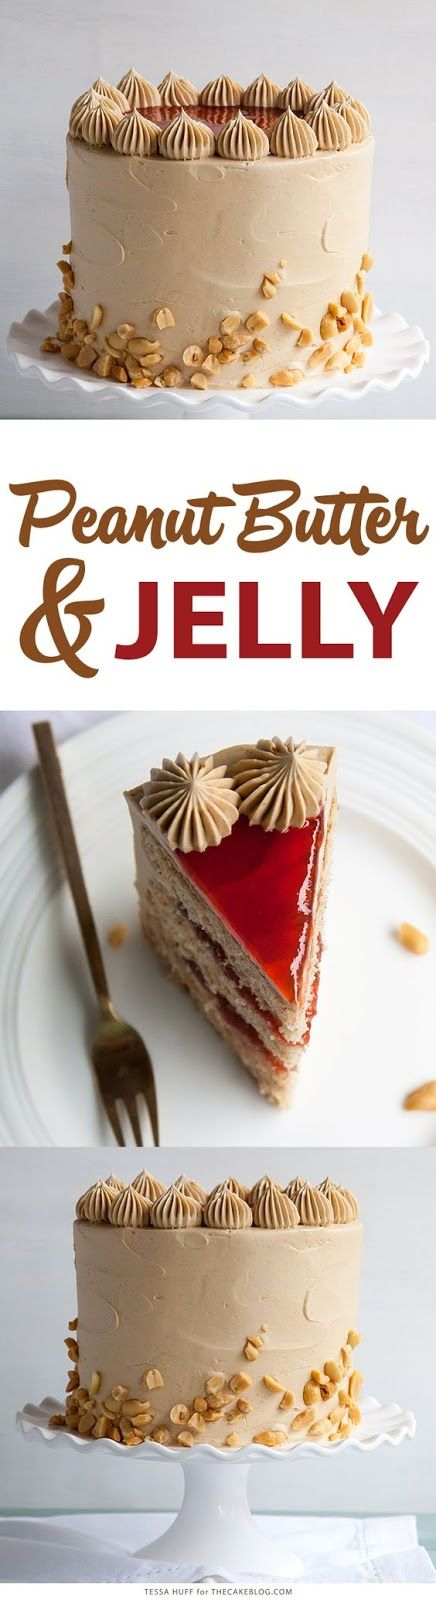 PEANUT BUTTER and JELLY CAKE | Food And Cake Recipes